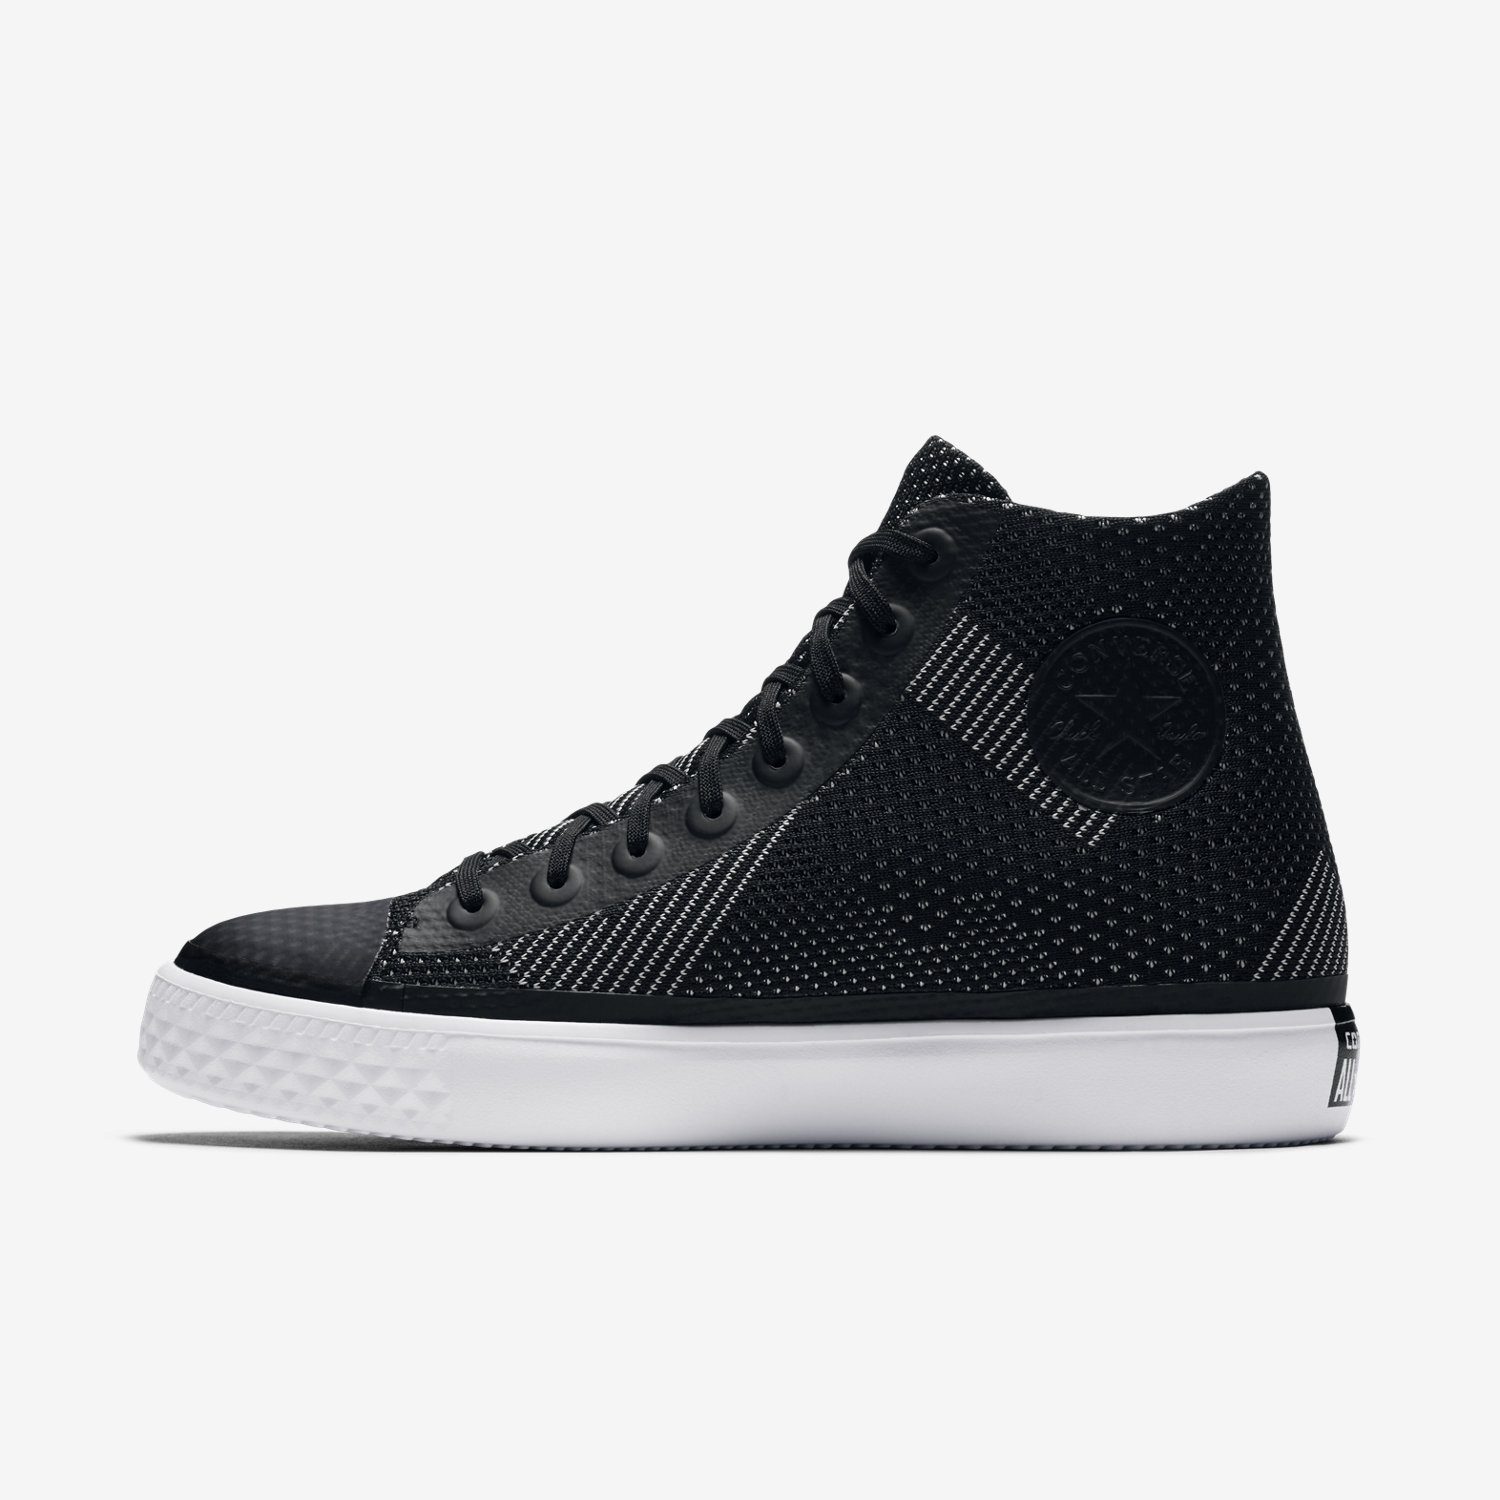 nike shoes white and black high top. nike shoes white and black high top 3